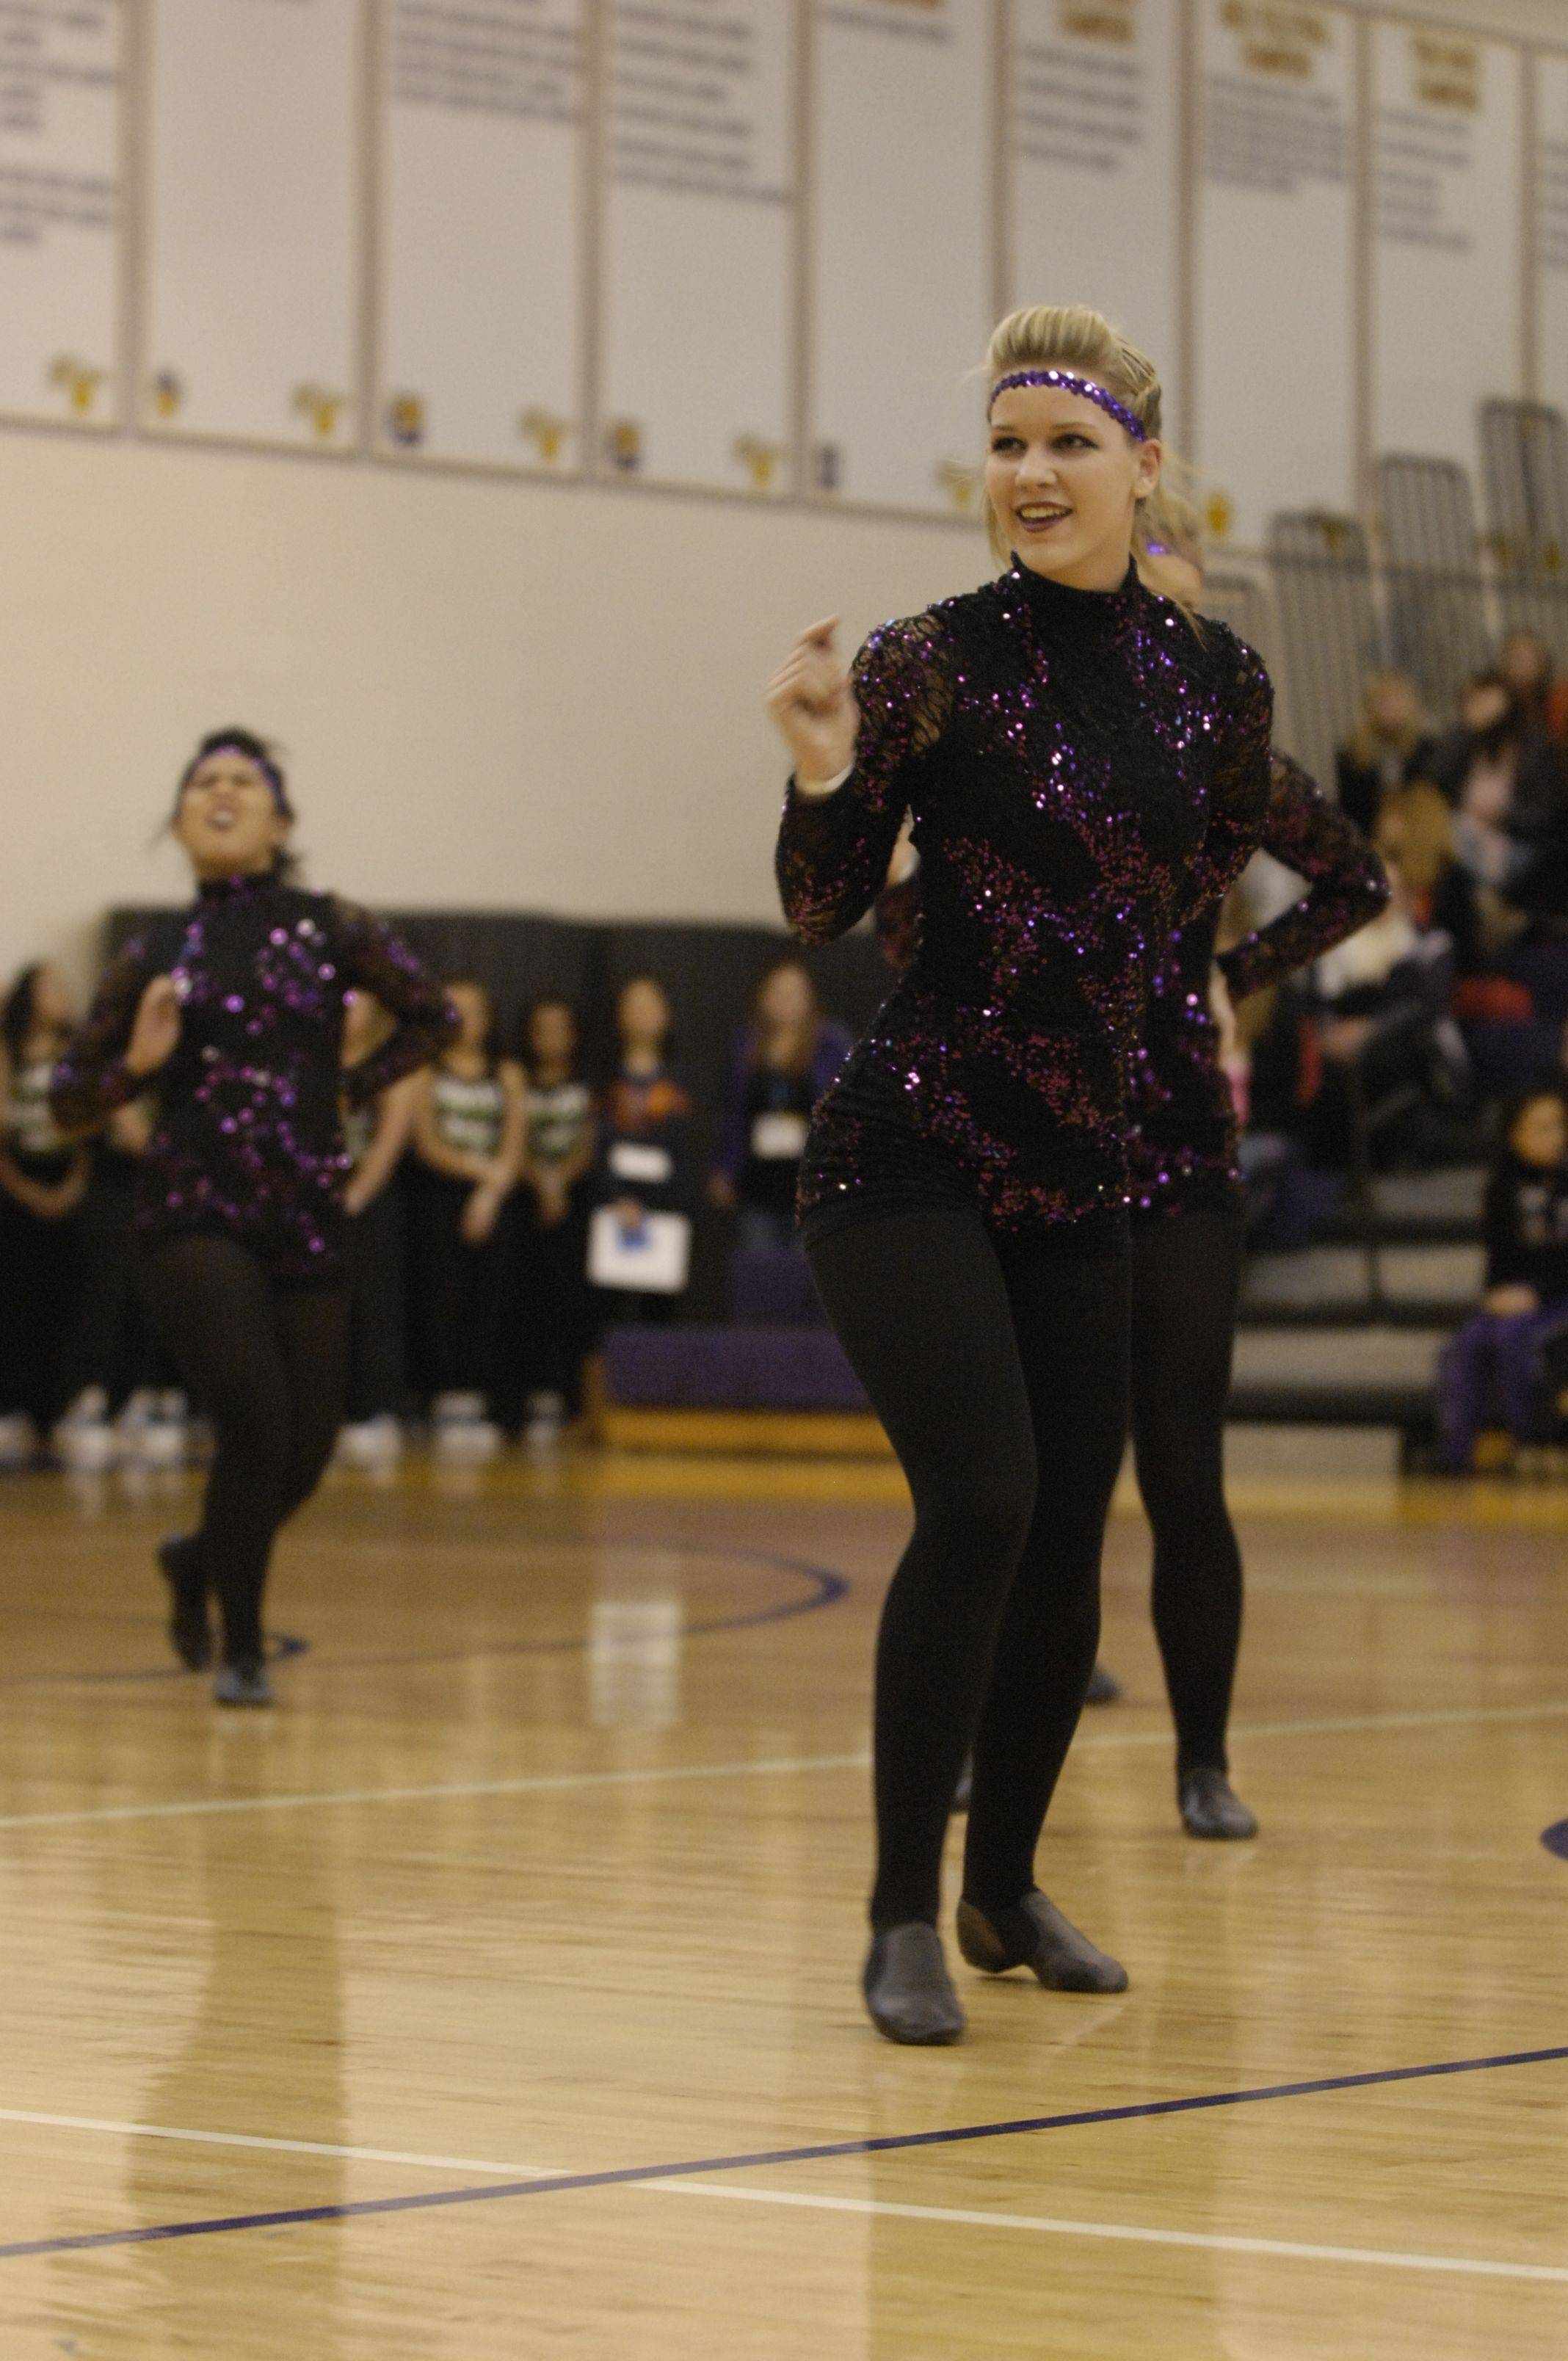 Antioch Community High School performs in the AA Kick division during the Team Dance Illinois Wauconda Invitational competition at Wauconda High School.